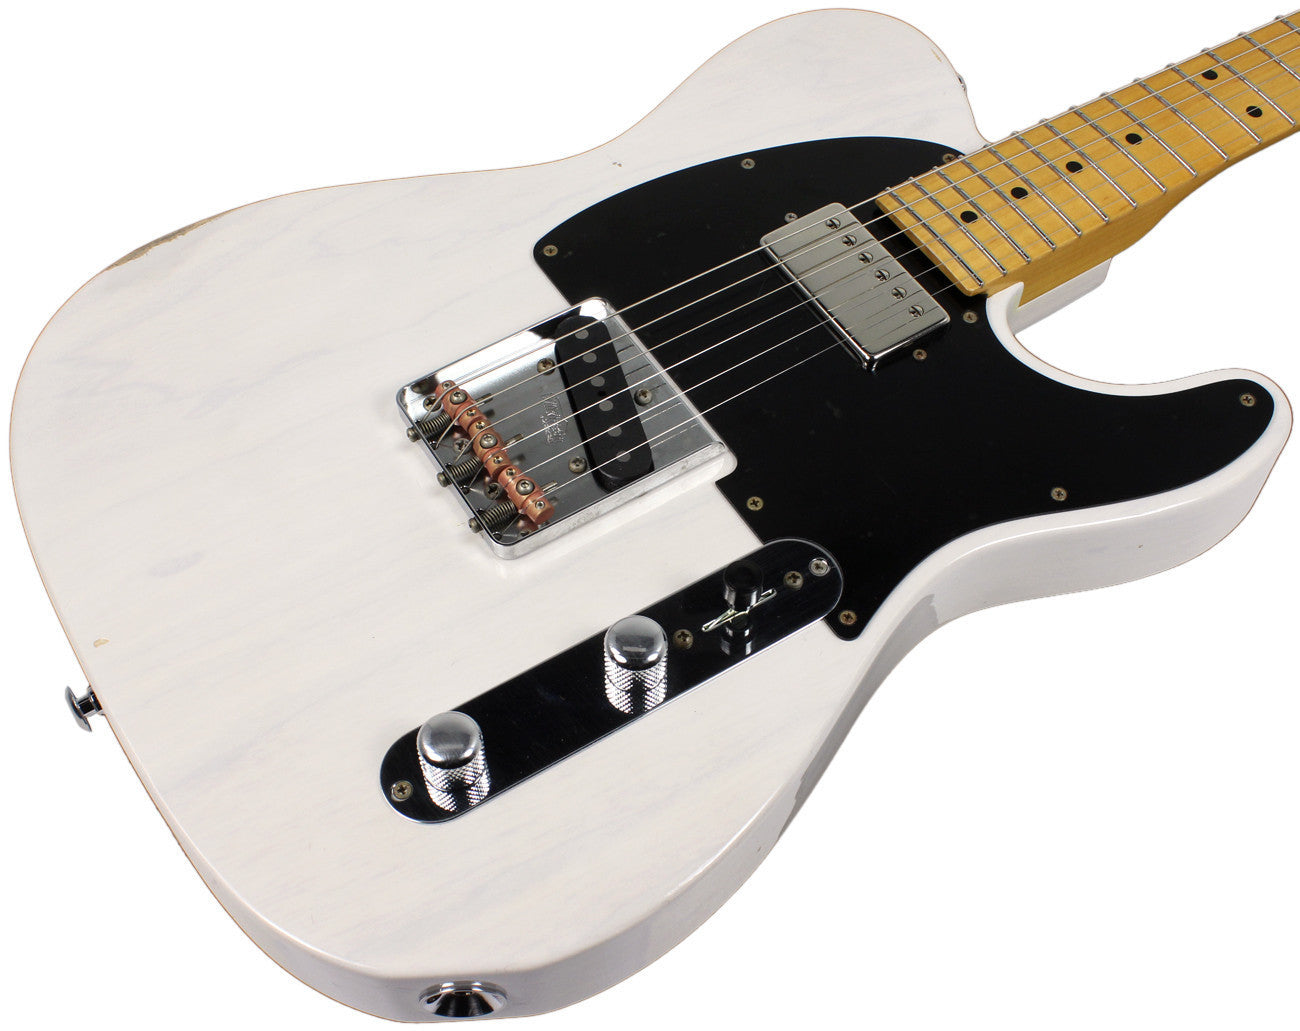 Suhr Classic T Antique Trans White Maple fingerboard SH SUHR - HIENDGUITAR.COM